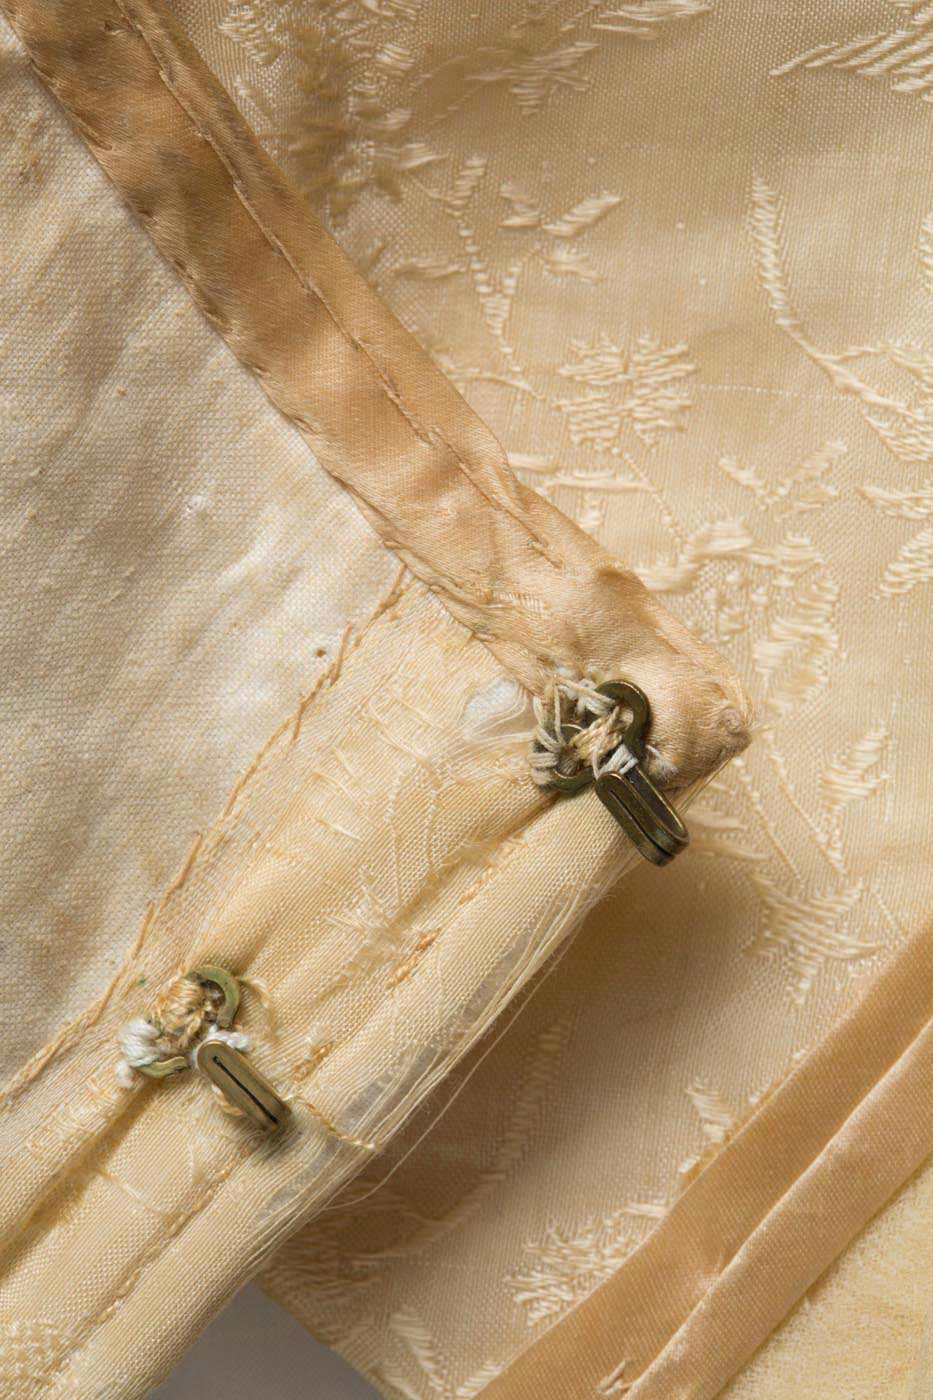 Detail of hook and eye closures used to fasten the bodice. - click to view larger image